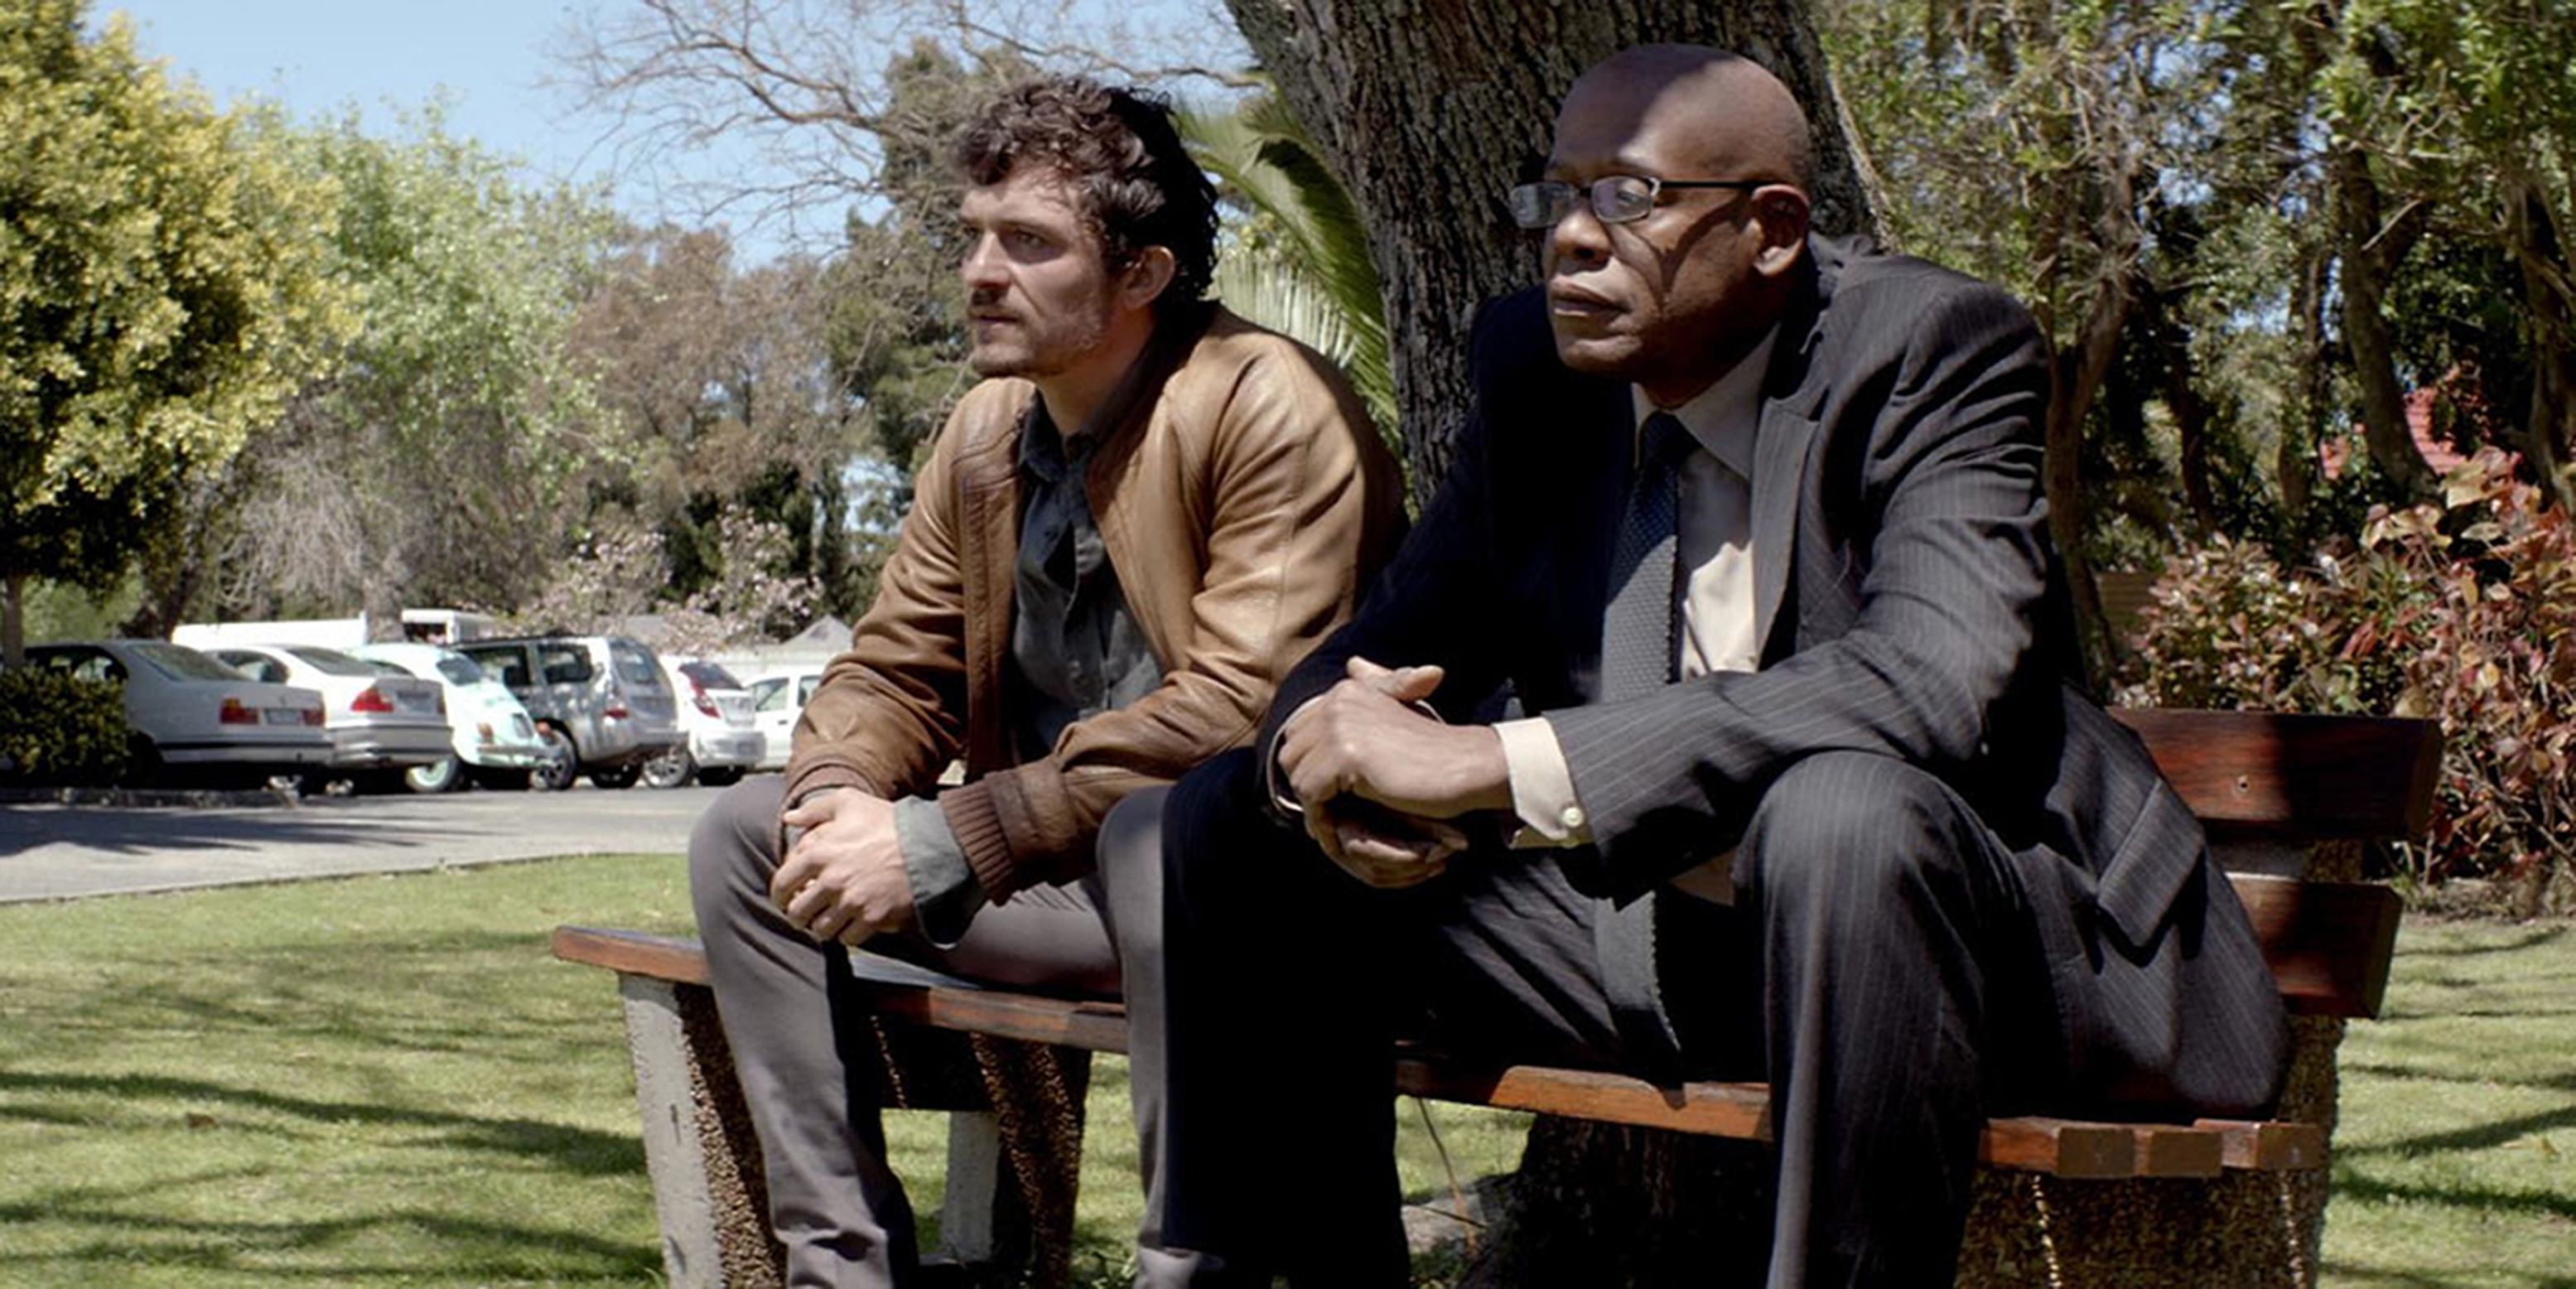 Equipo. Orlando Bloom y Forest Whitaker